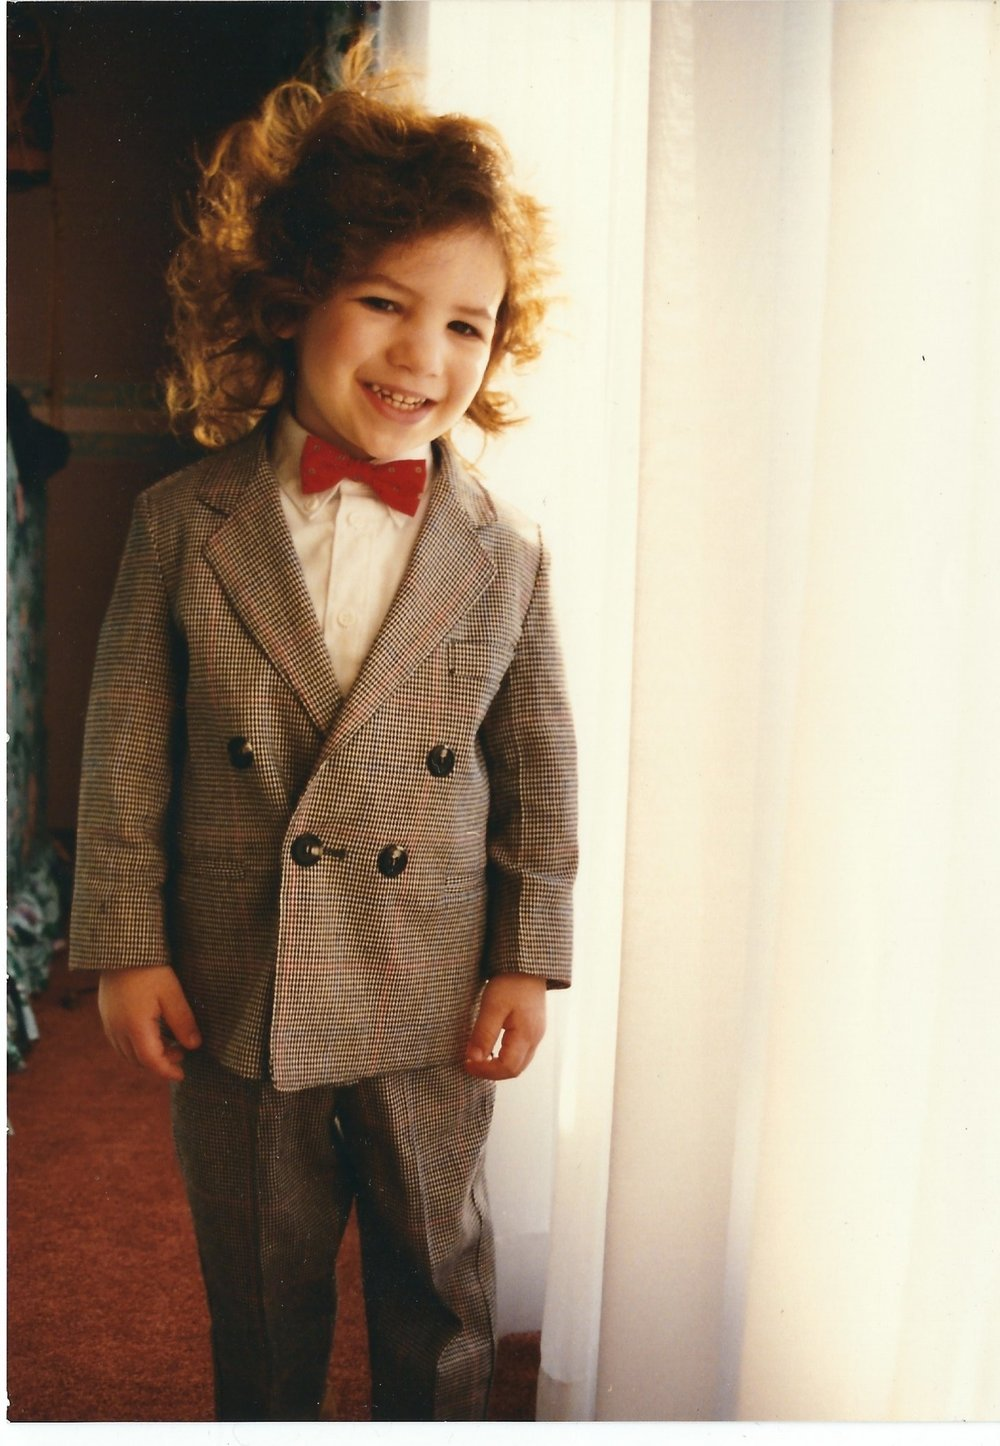 Judd as a toddler - January 19, 1991 - Los Angeles, California